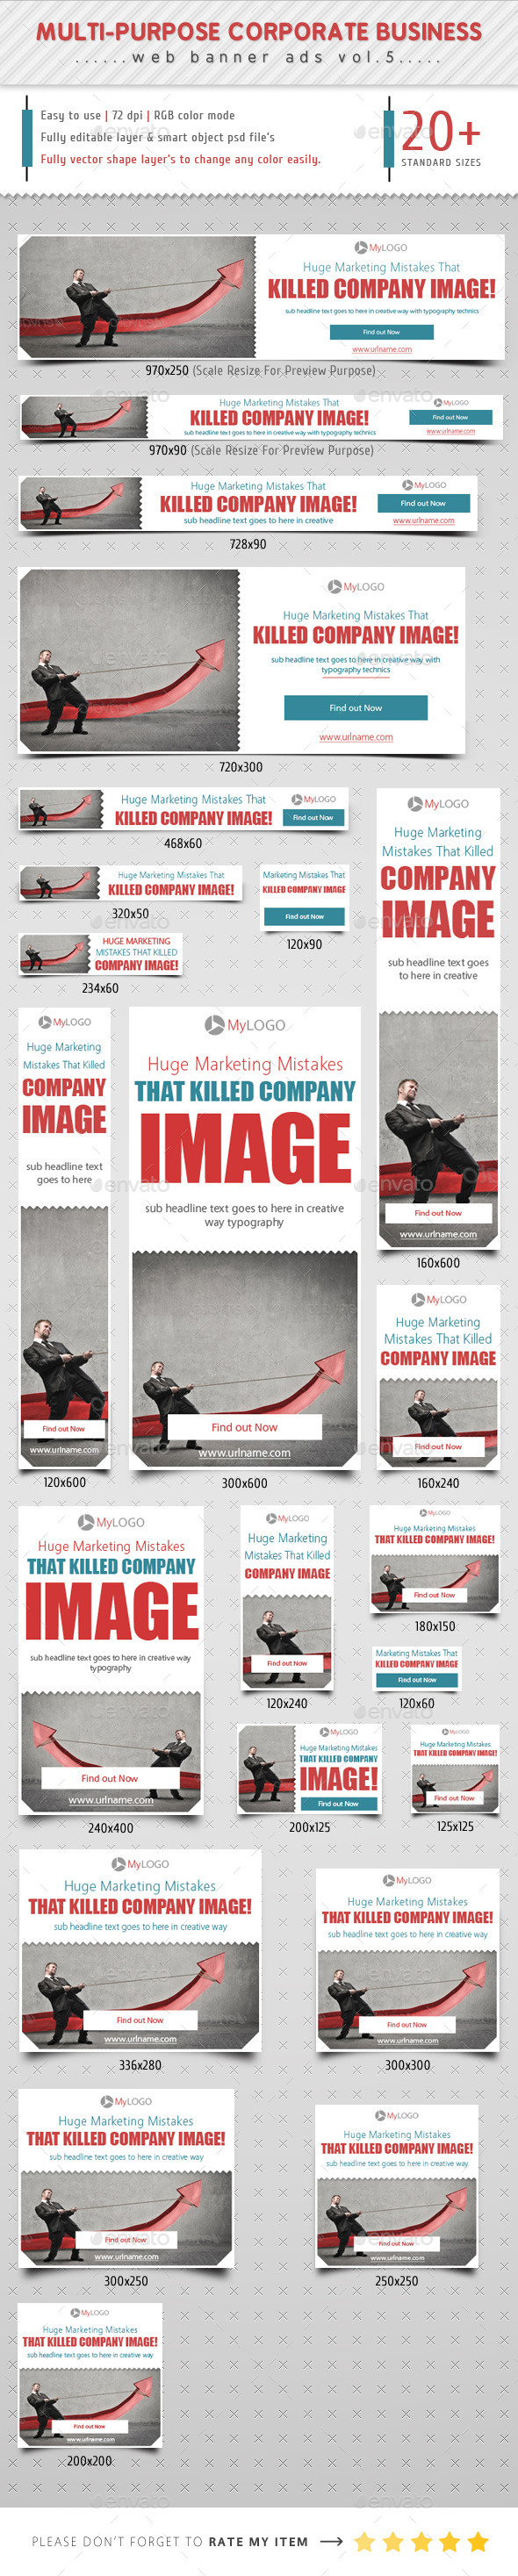 Corporate Web Banner Ads Vol.5 - Banners & Ads Web Elements